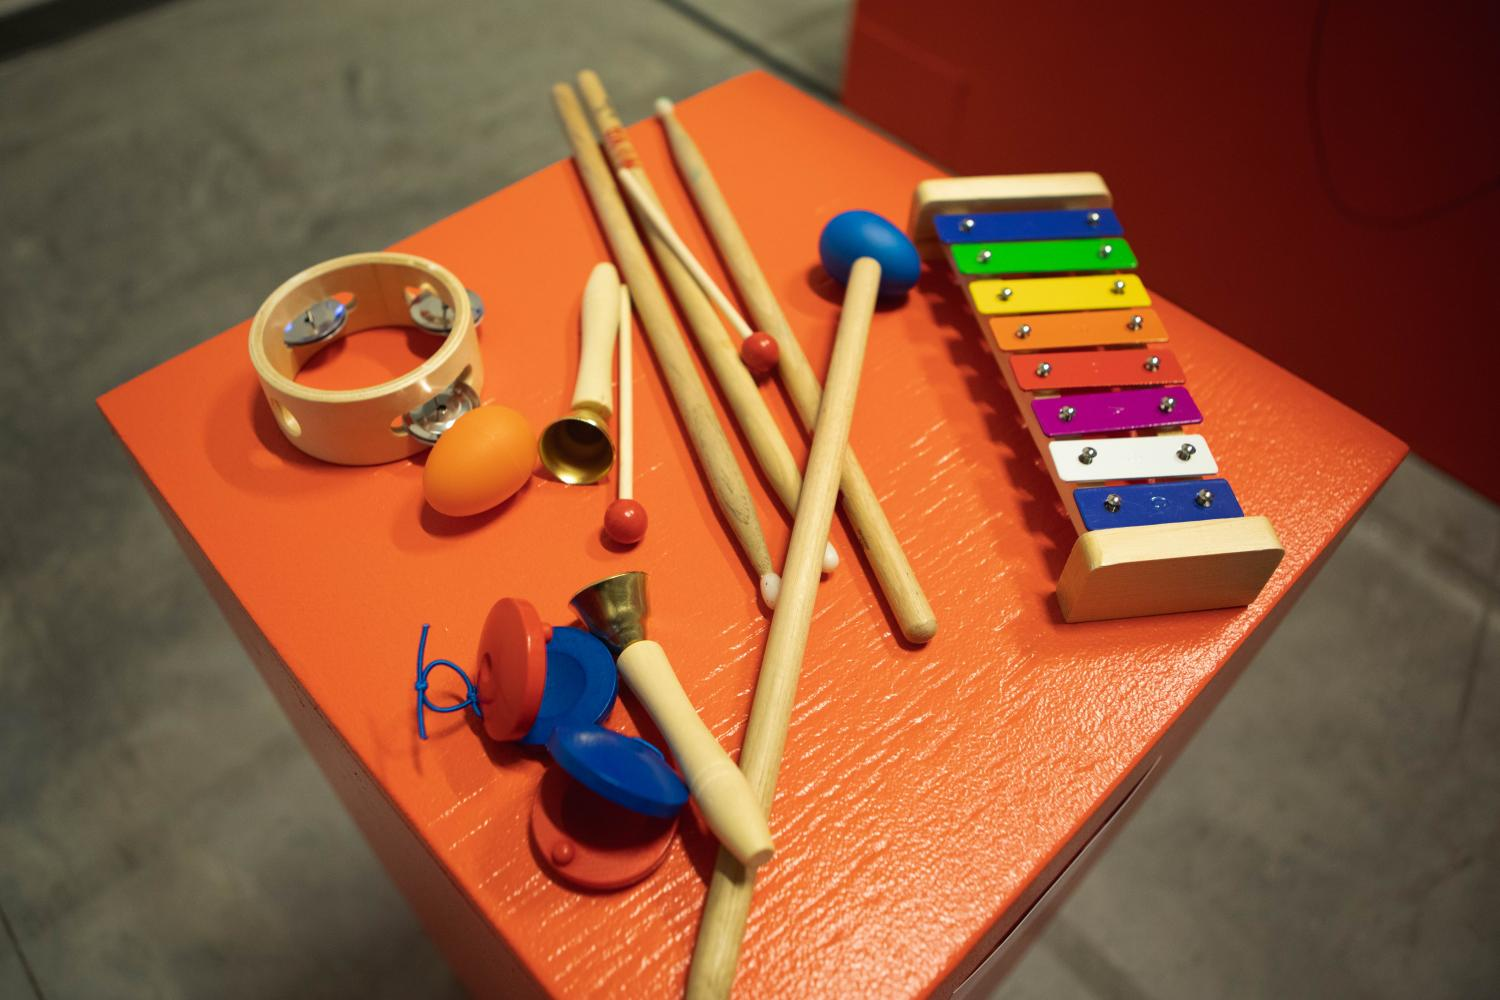 Percussion instruments on red surface